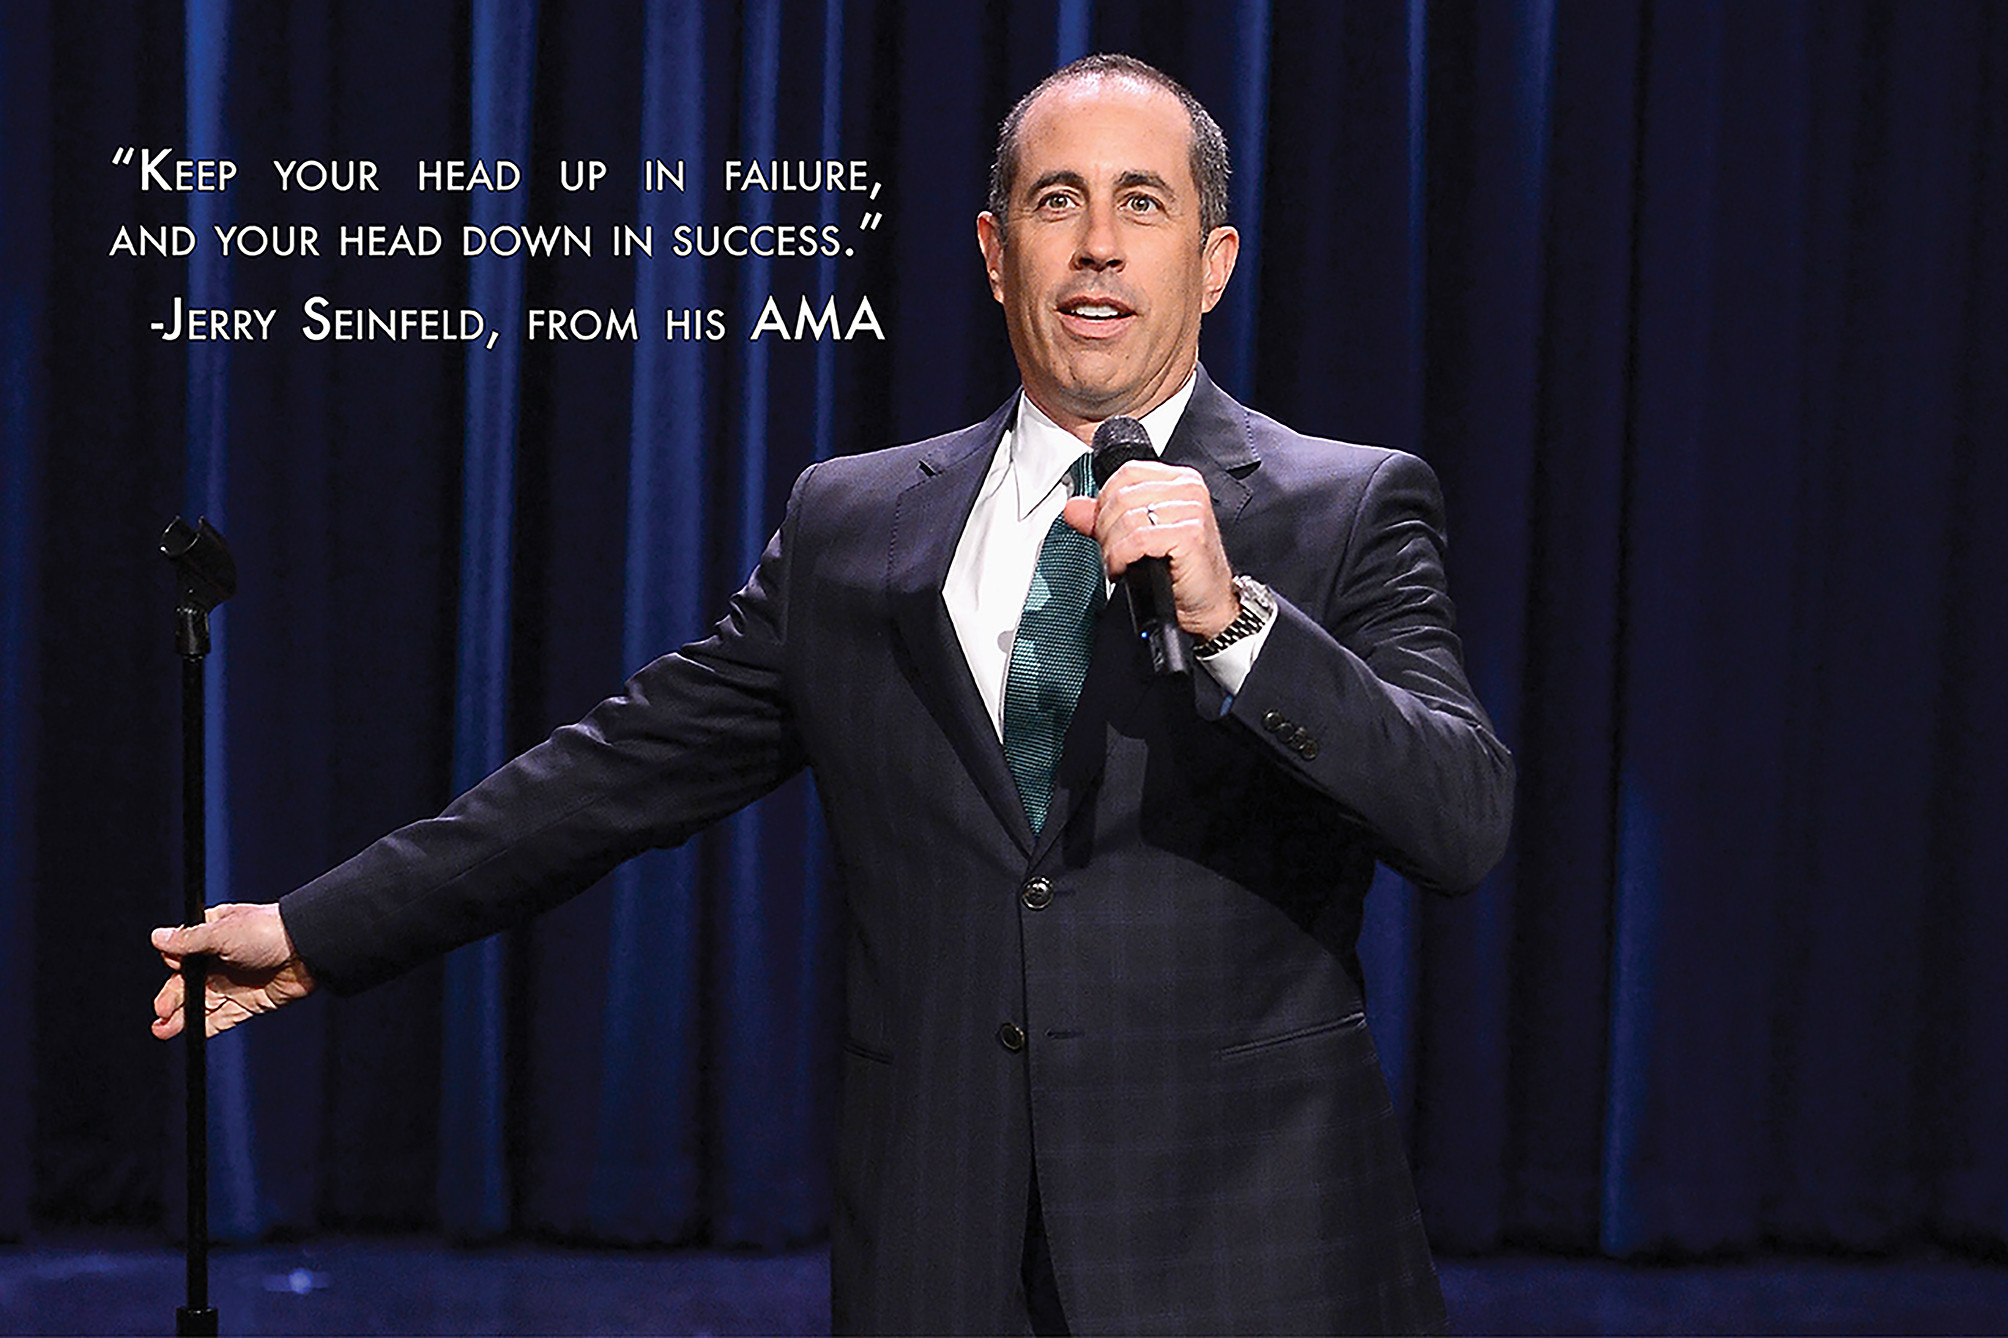 Seinfeld Quotes Brilliant Jerry Seinfeld Quotes That Are Also Brilliant Words Of Wisdom